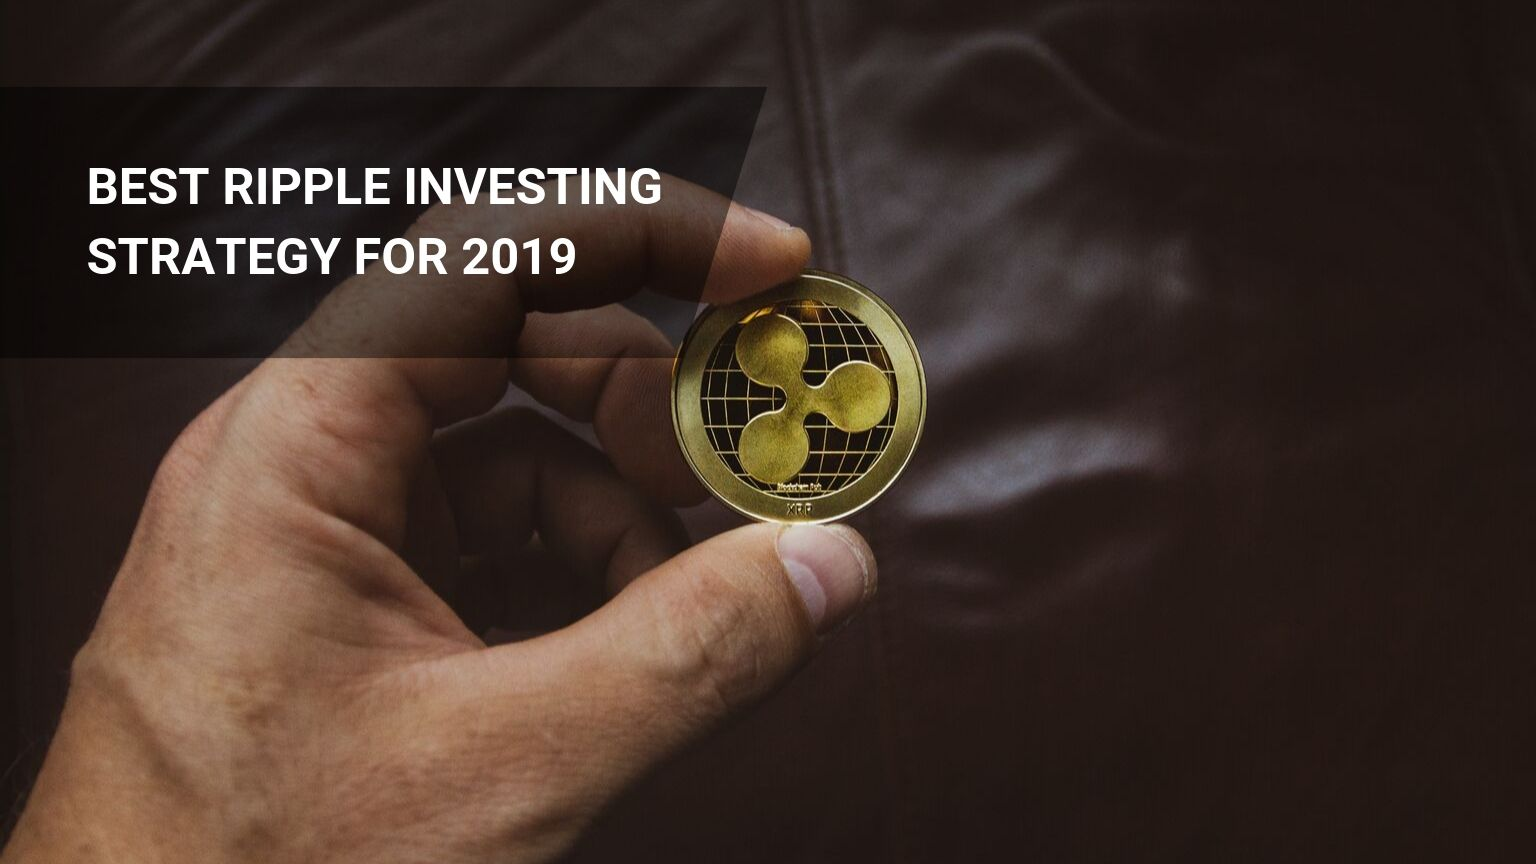 Best Ripple Investment Strategy for 2020: How to invest in Ripple